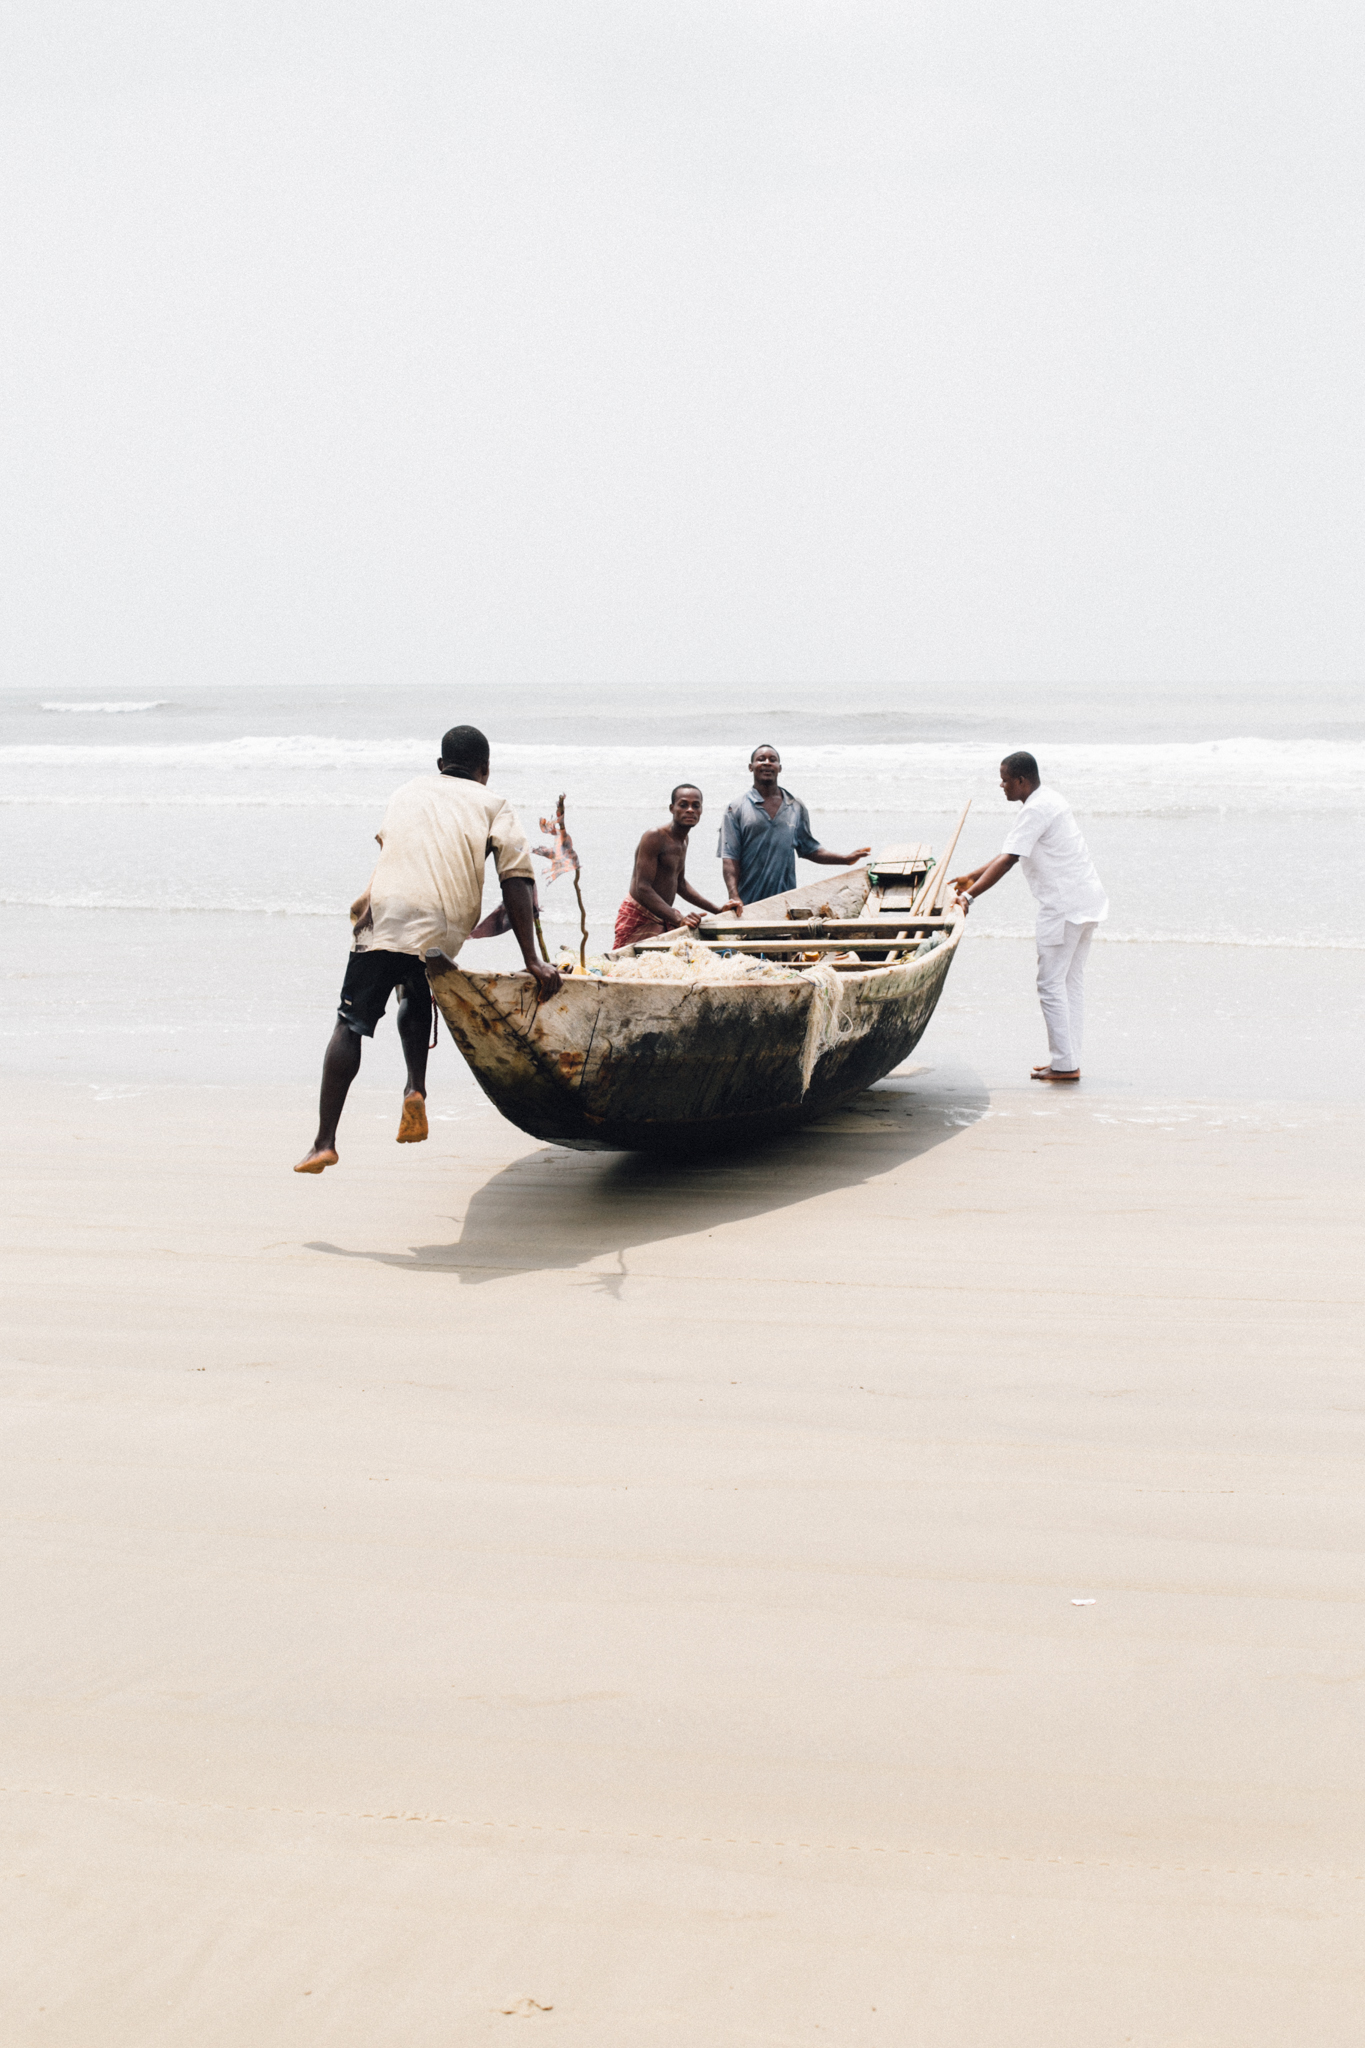 Fishermen bringing the boat home, Ikuru Town Beach